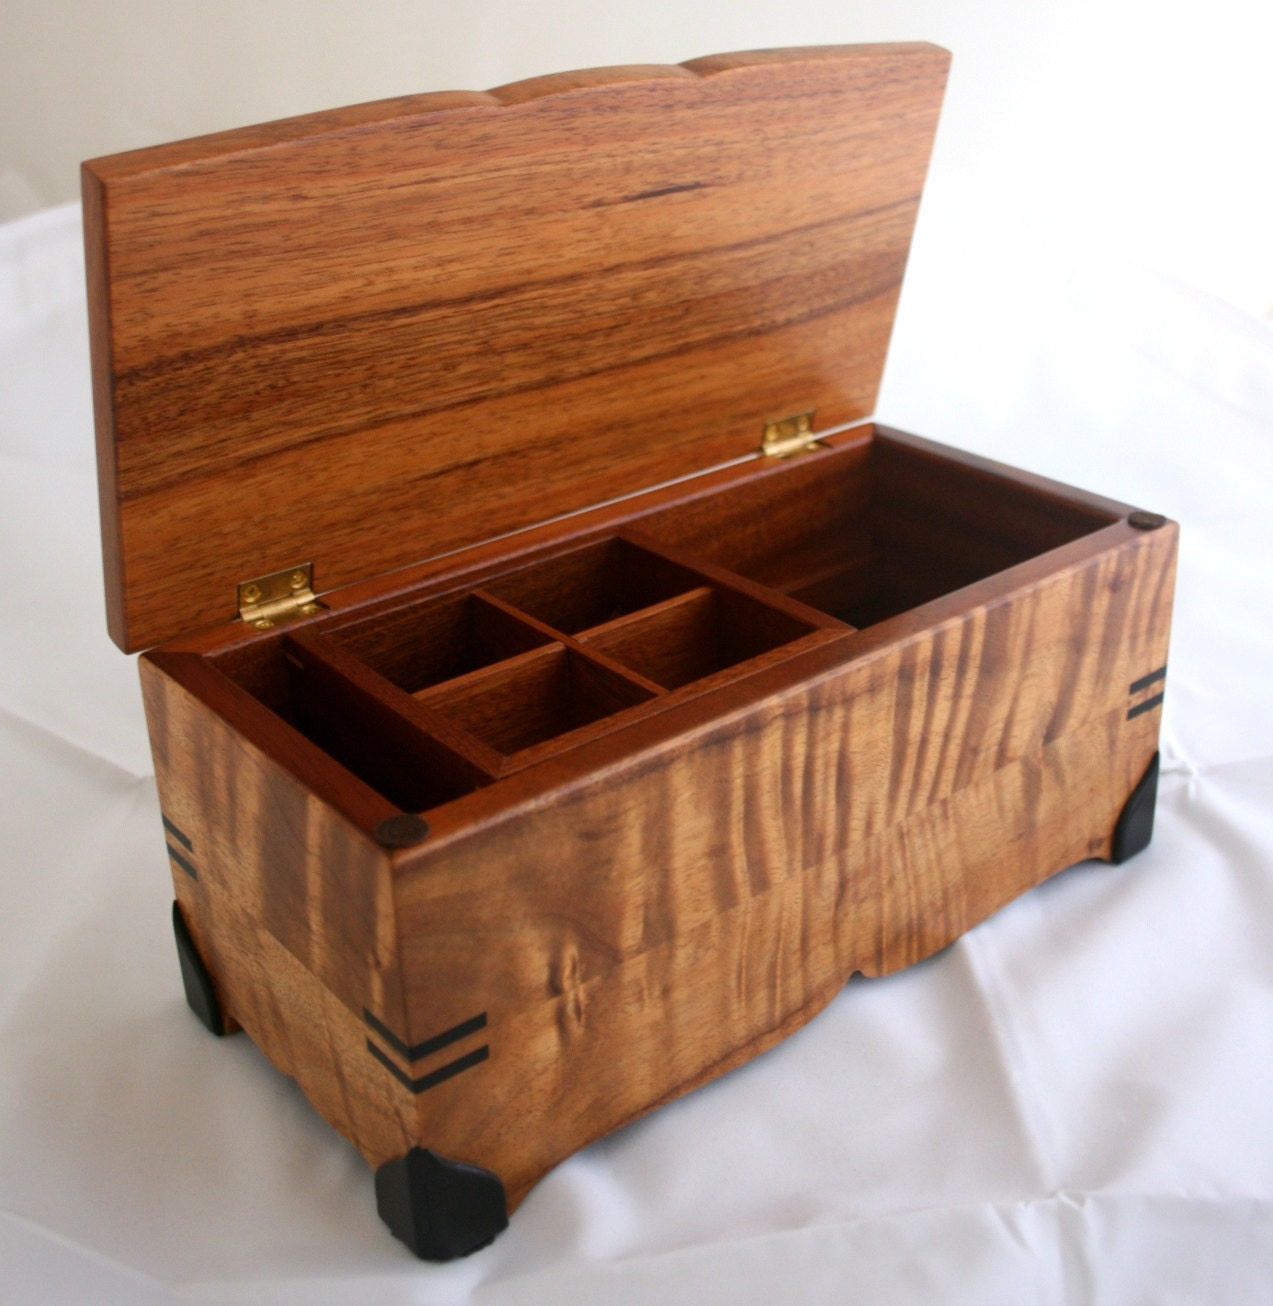 Items similar to Koa Wood Jewelry Box on Etsy